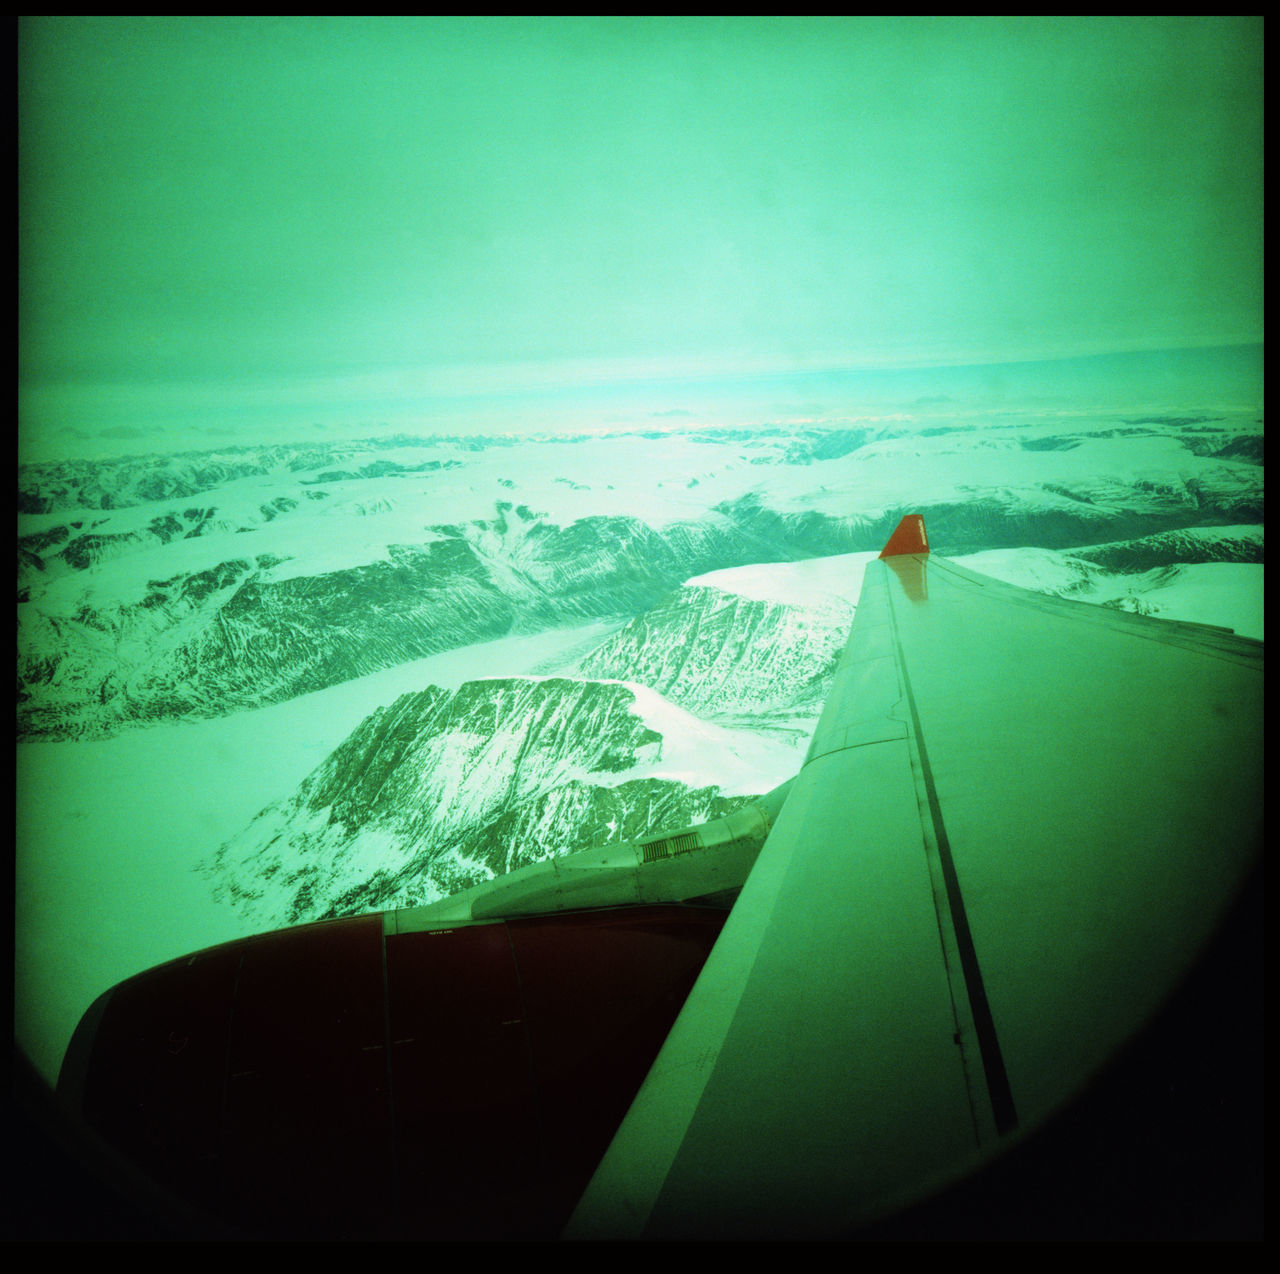 Cockpit Love Analogue Photography Arctic Climate Change Co-pilot Cockpit Expedition Flying Greenland Low Flight Mountains Northpole On The Way Pilot Plane Plane Window Planes Polar  Polar Flight Snow And Ice  Trip Turbine Xpro